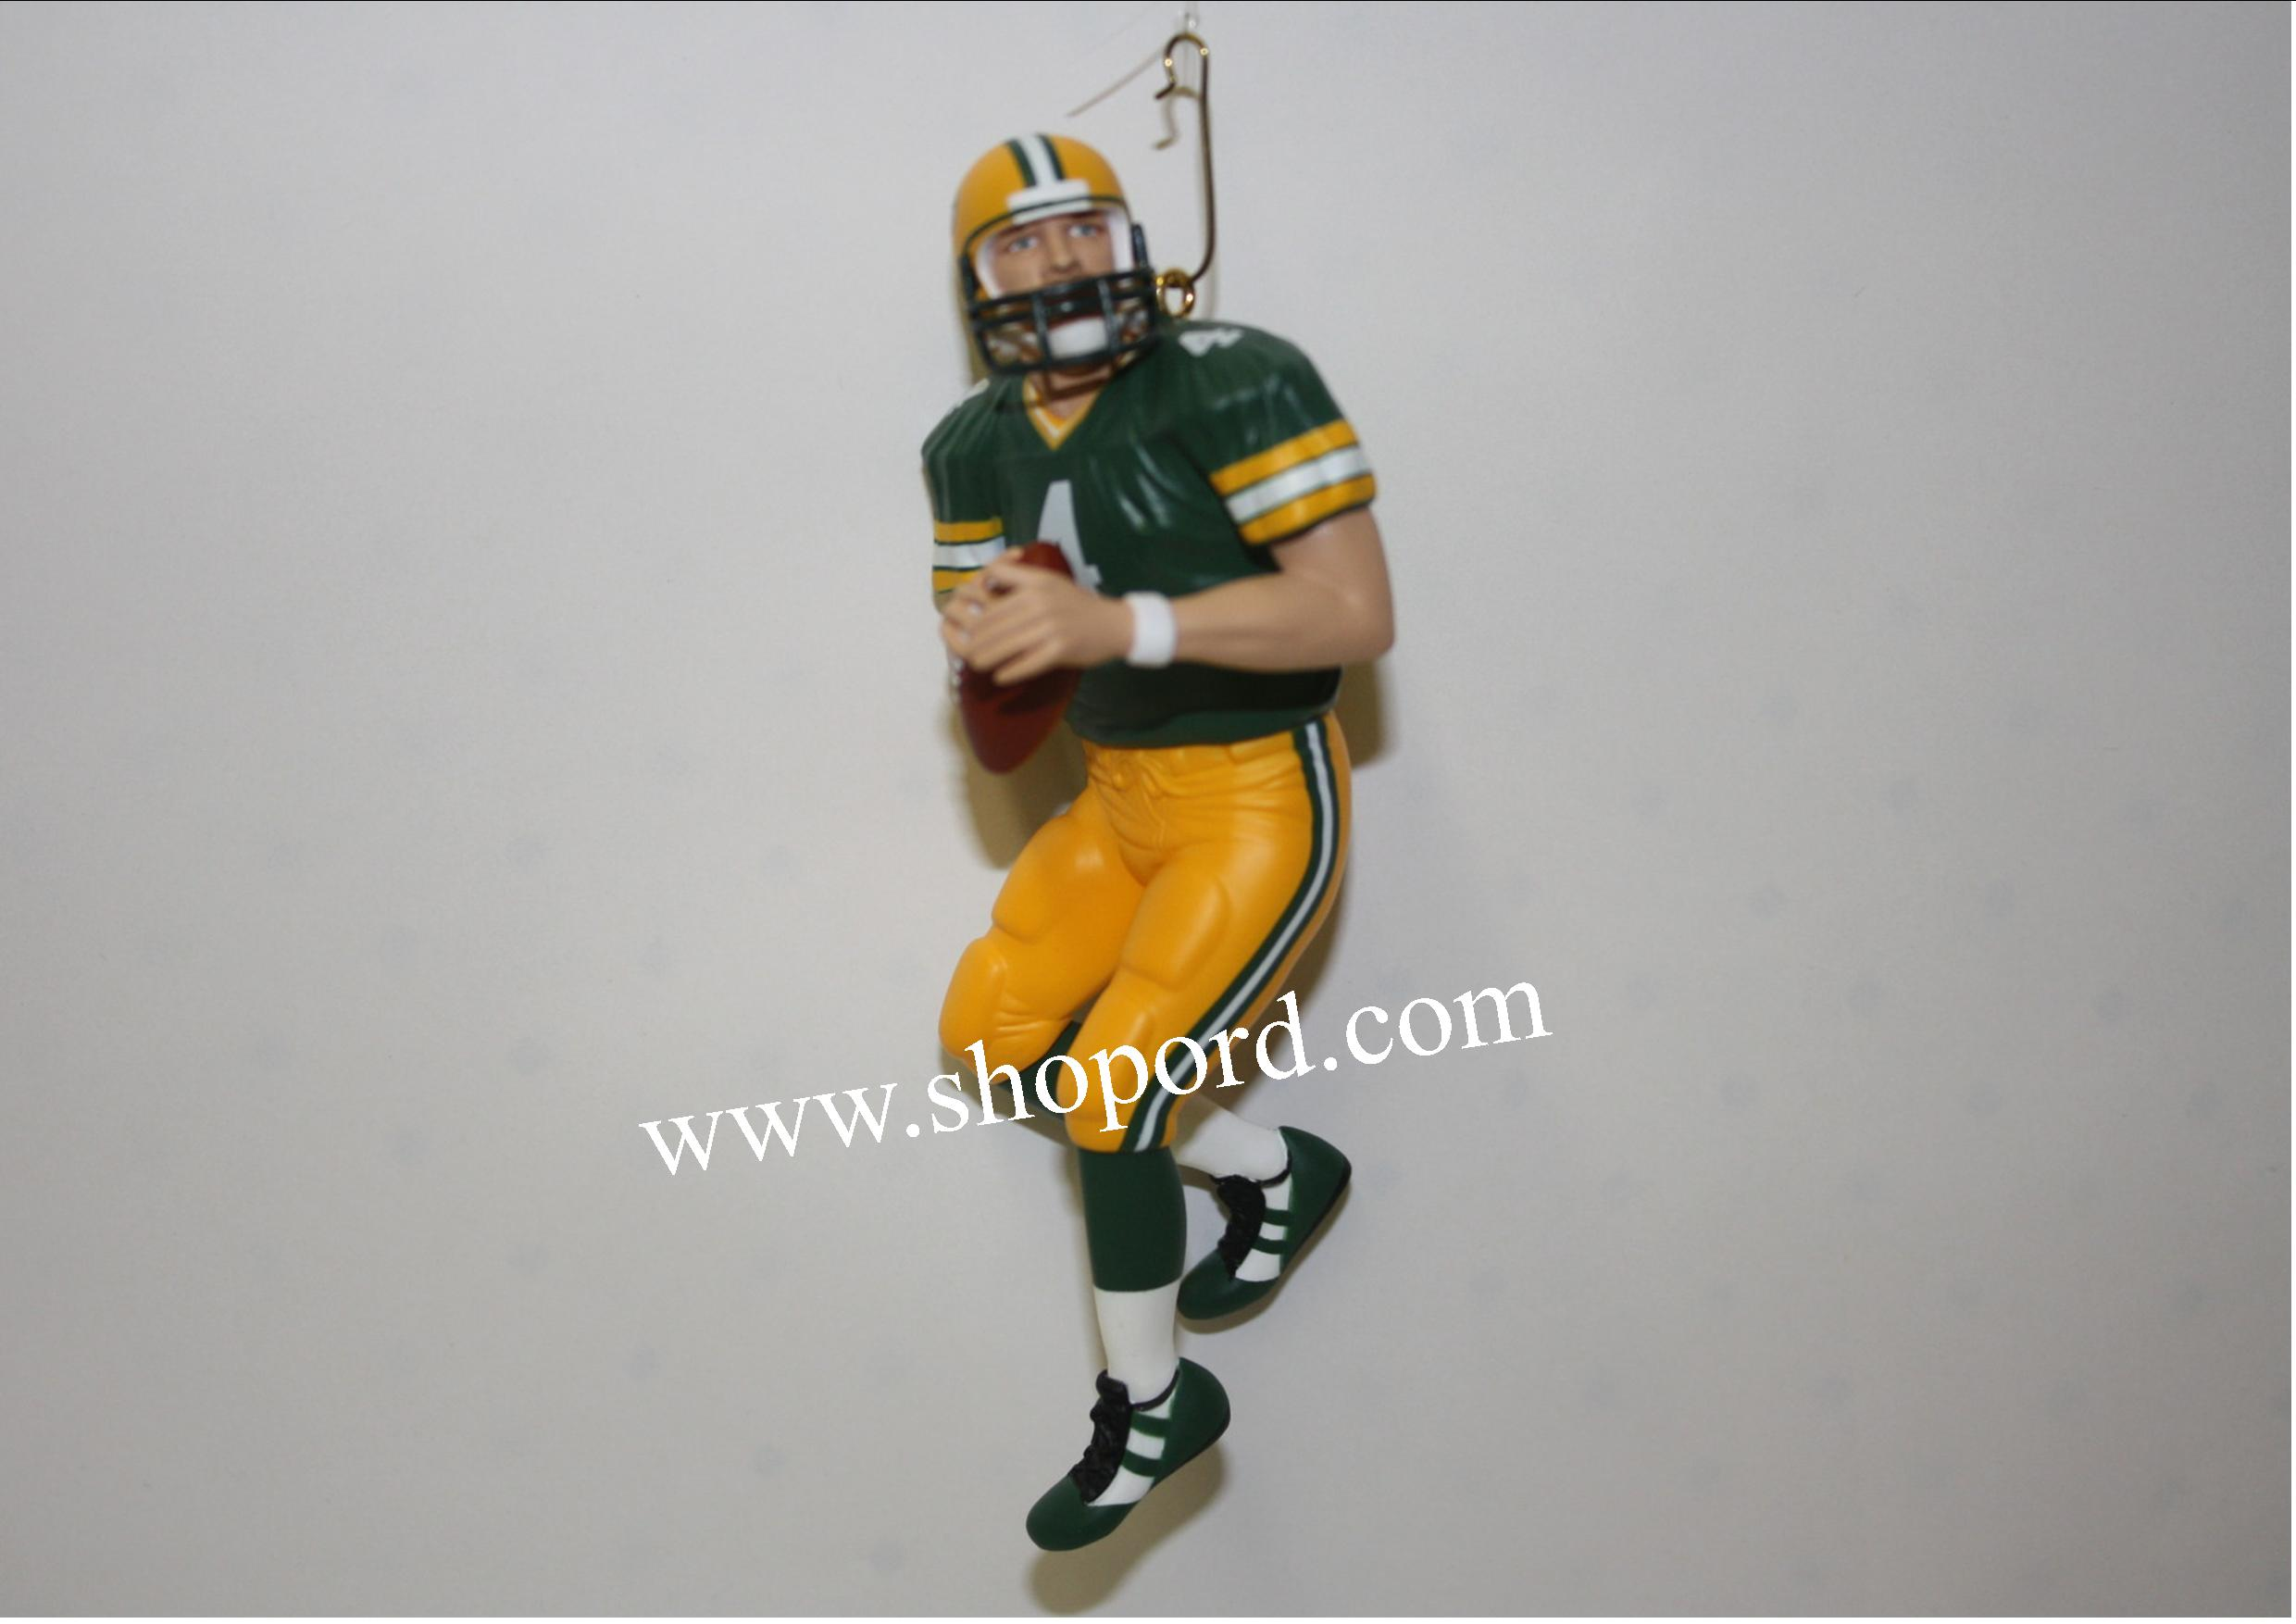 Hallmark 2001 Brett Bavre Ornament 7th In The Football Legend Series QX5232